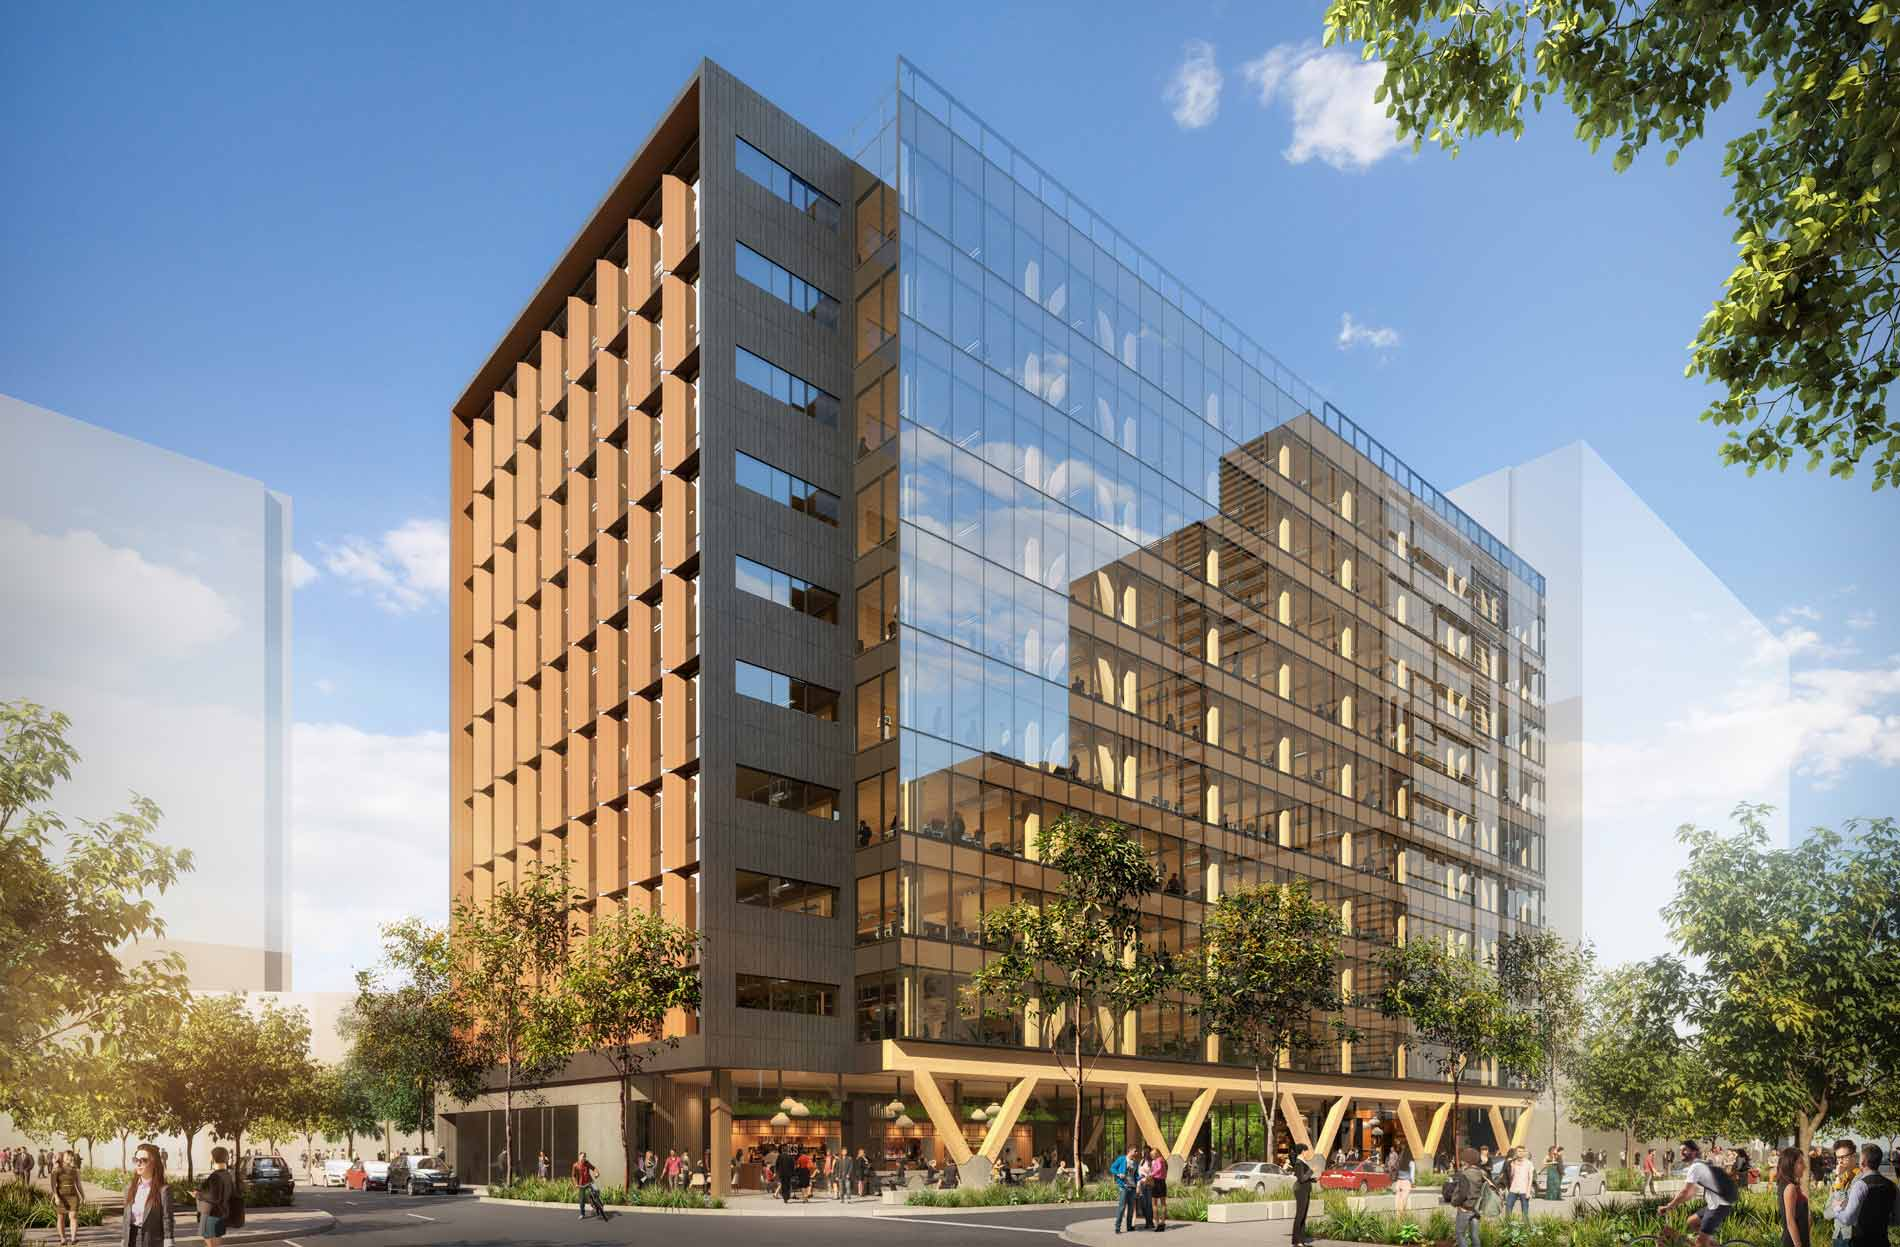 Acting Premier and Minister for Infrastructure and Planning Jackie Trad said 25 King was breaking new ground in its use of structural timber in a building of its type and size.